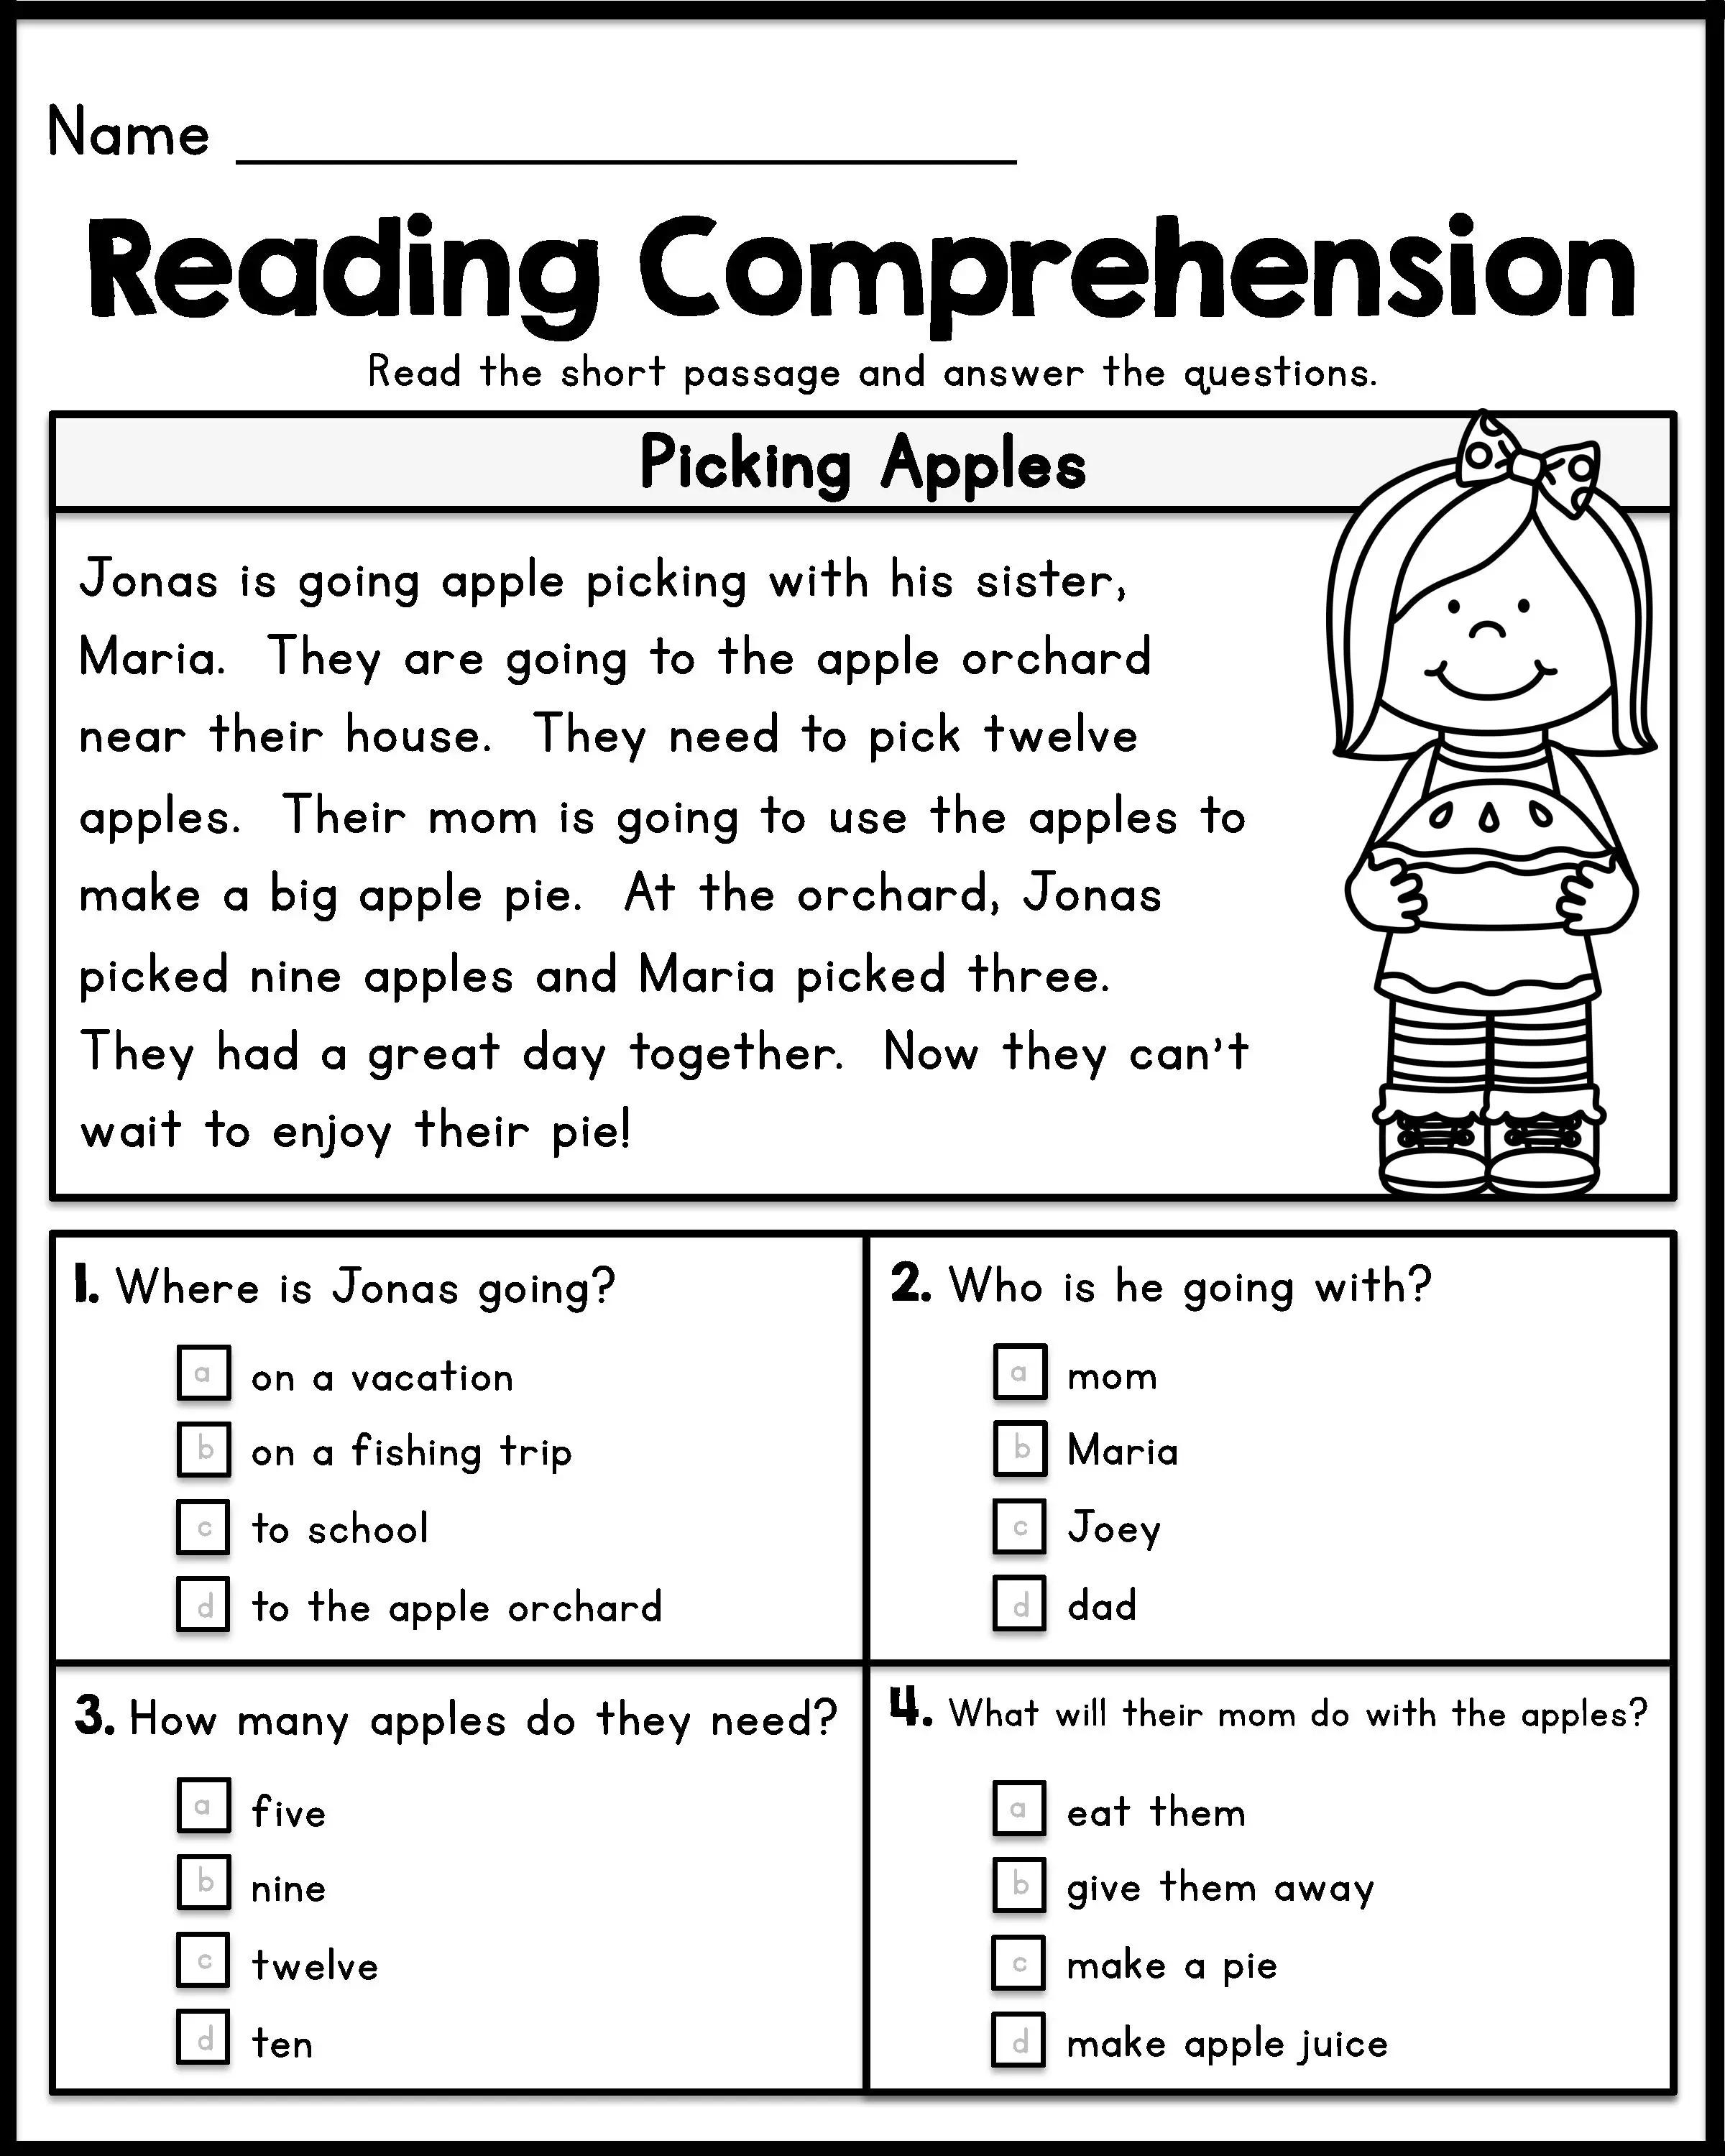 12 Grade Reading Comprehension Worksheet